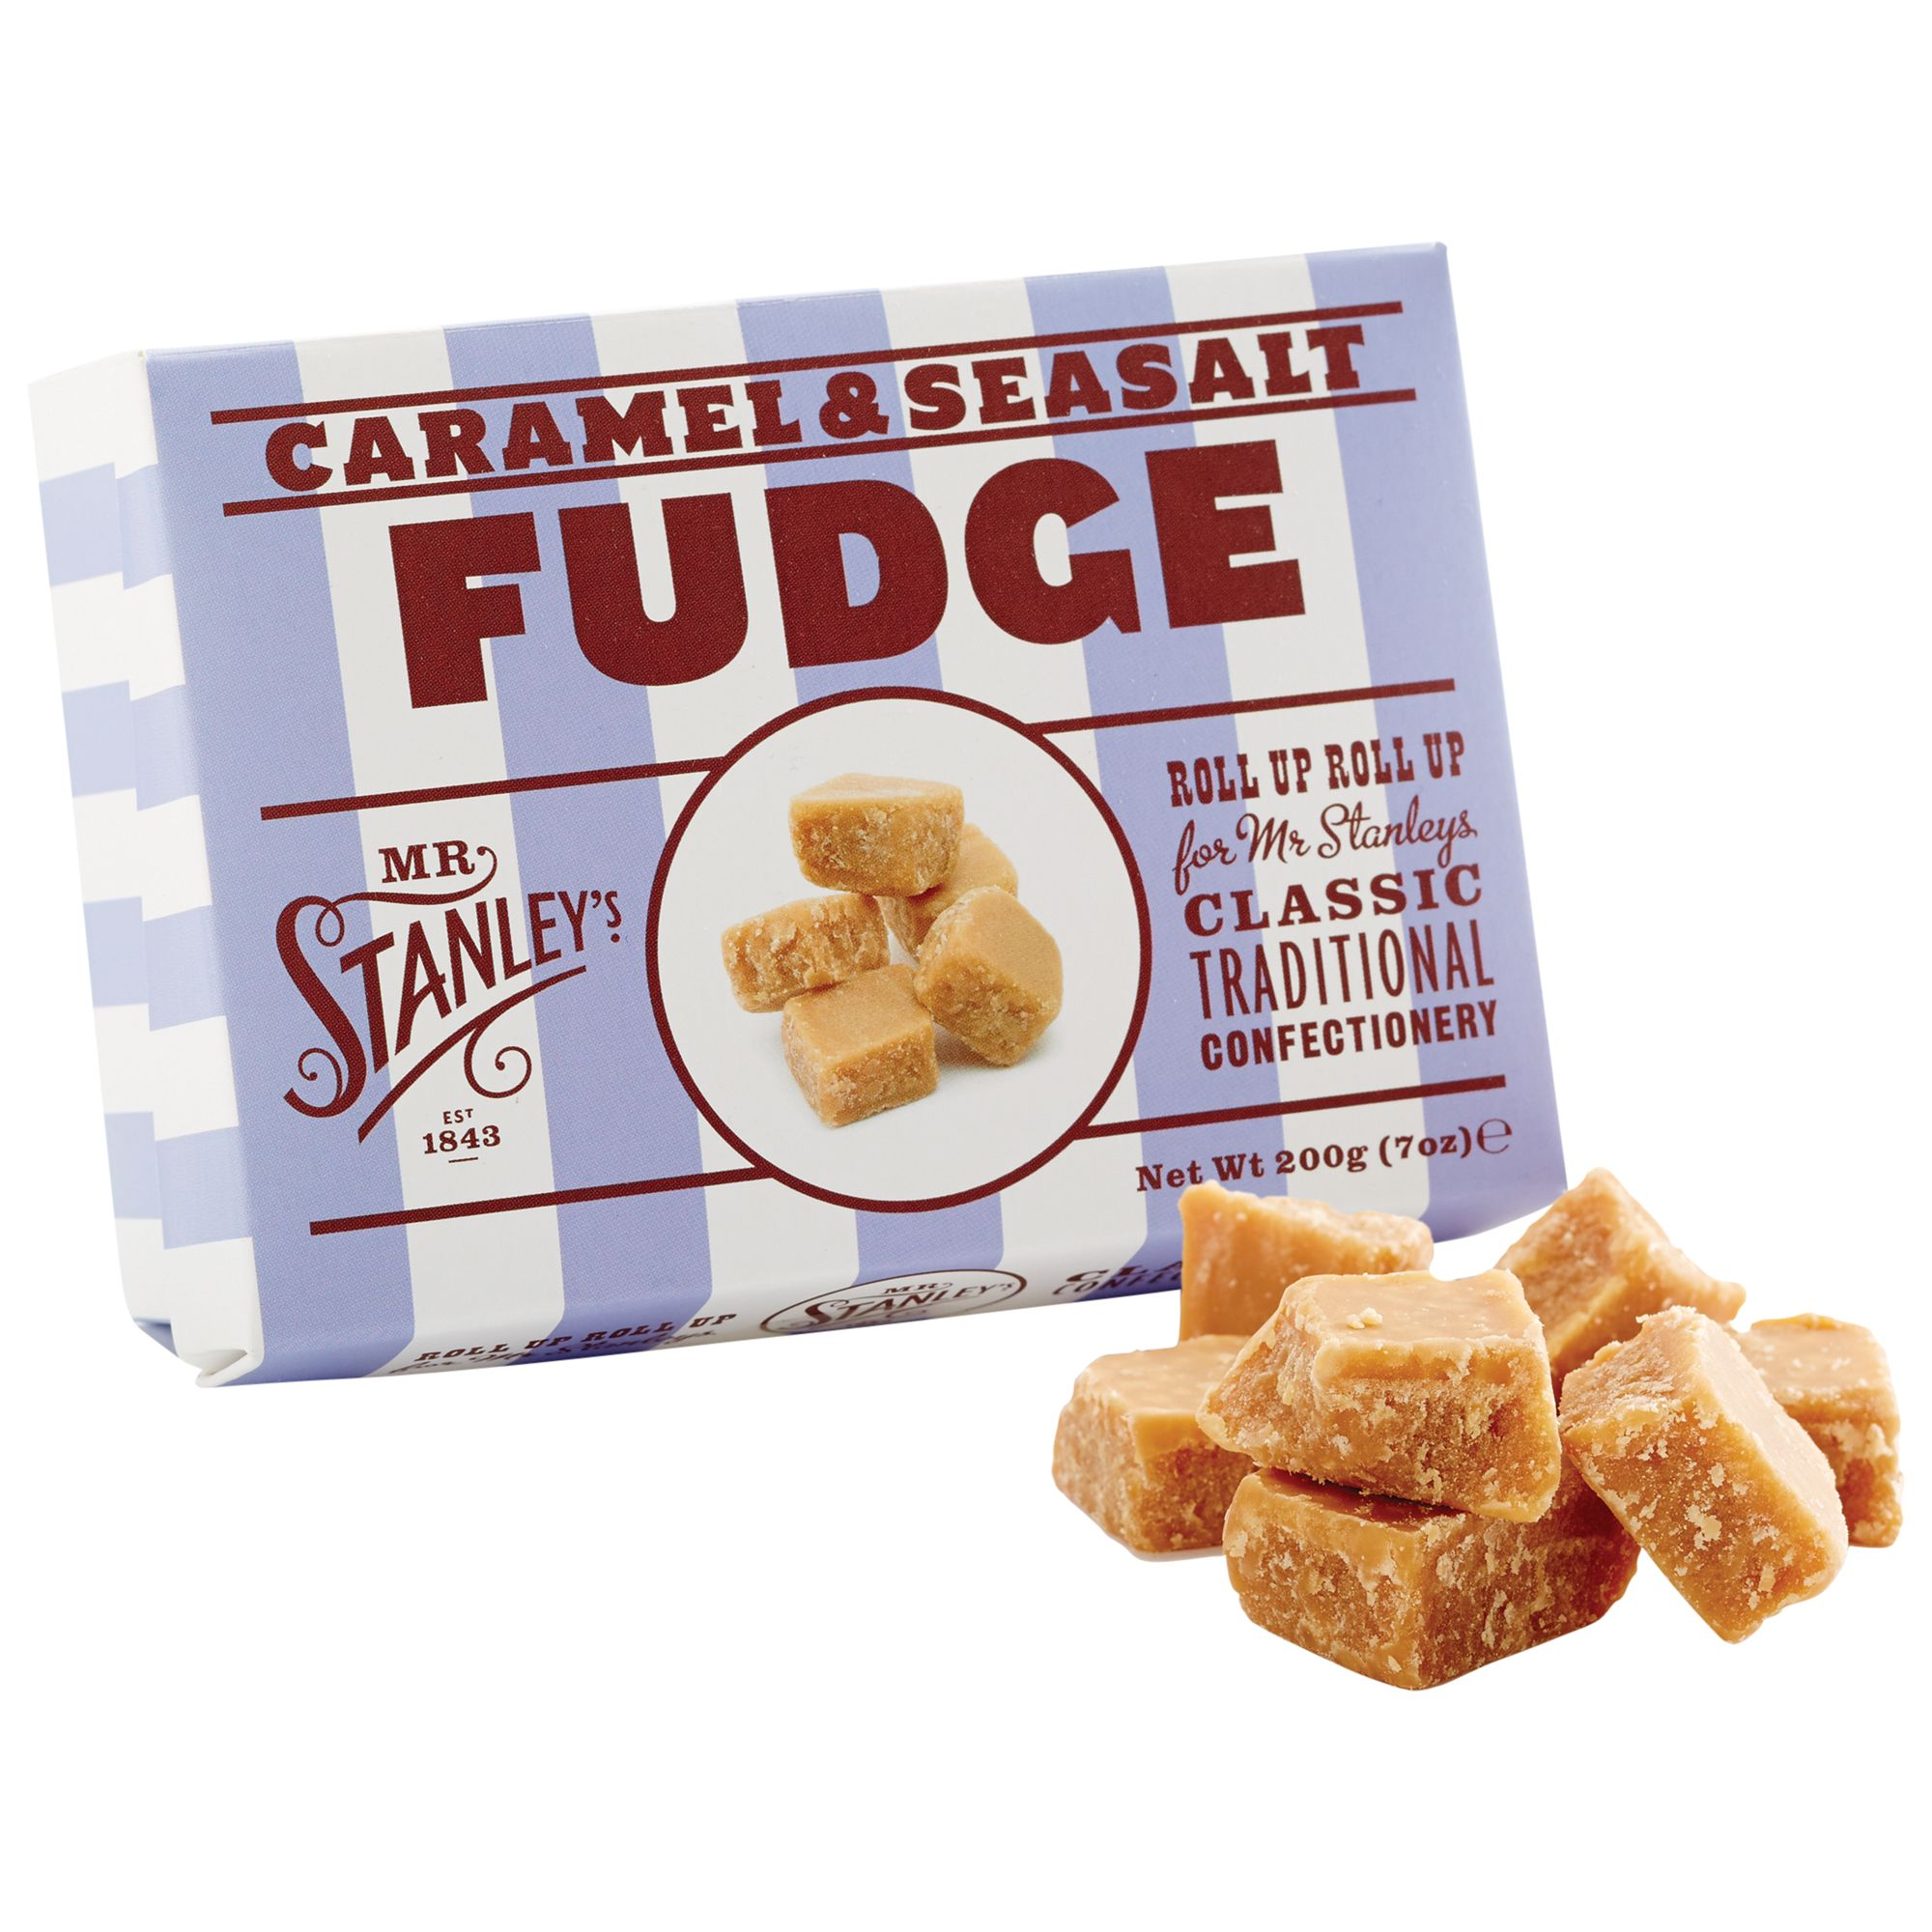 Mr Stanley's Mr. Stanley's Caramel and Sea Salt Fudge, 200g